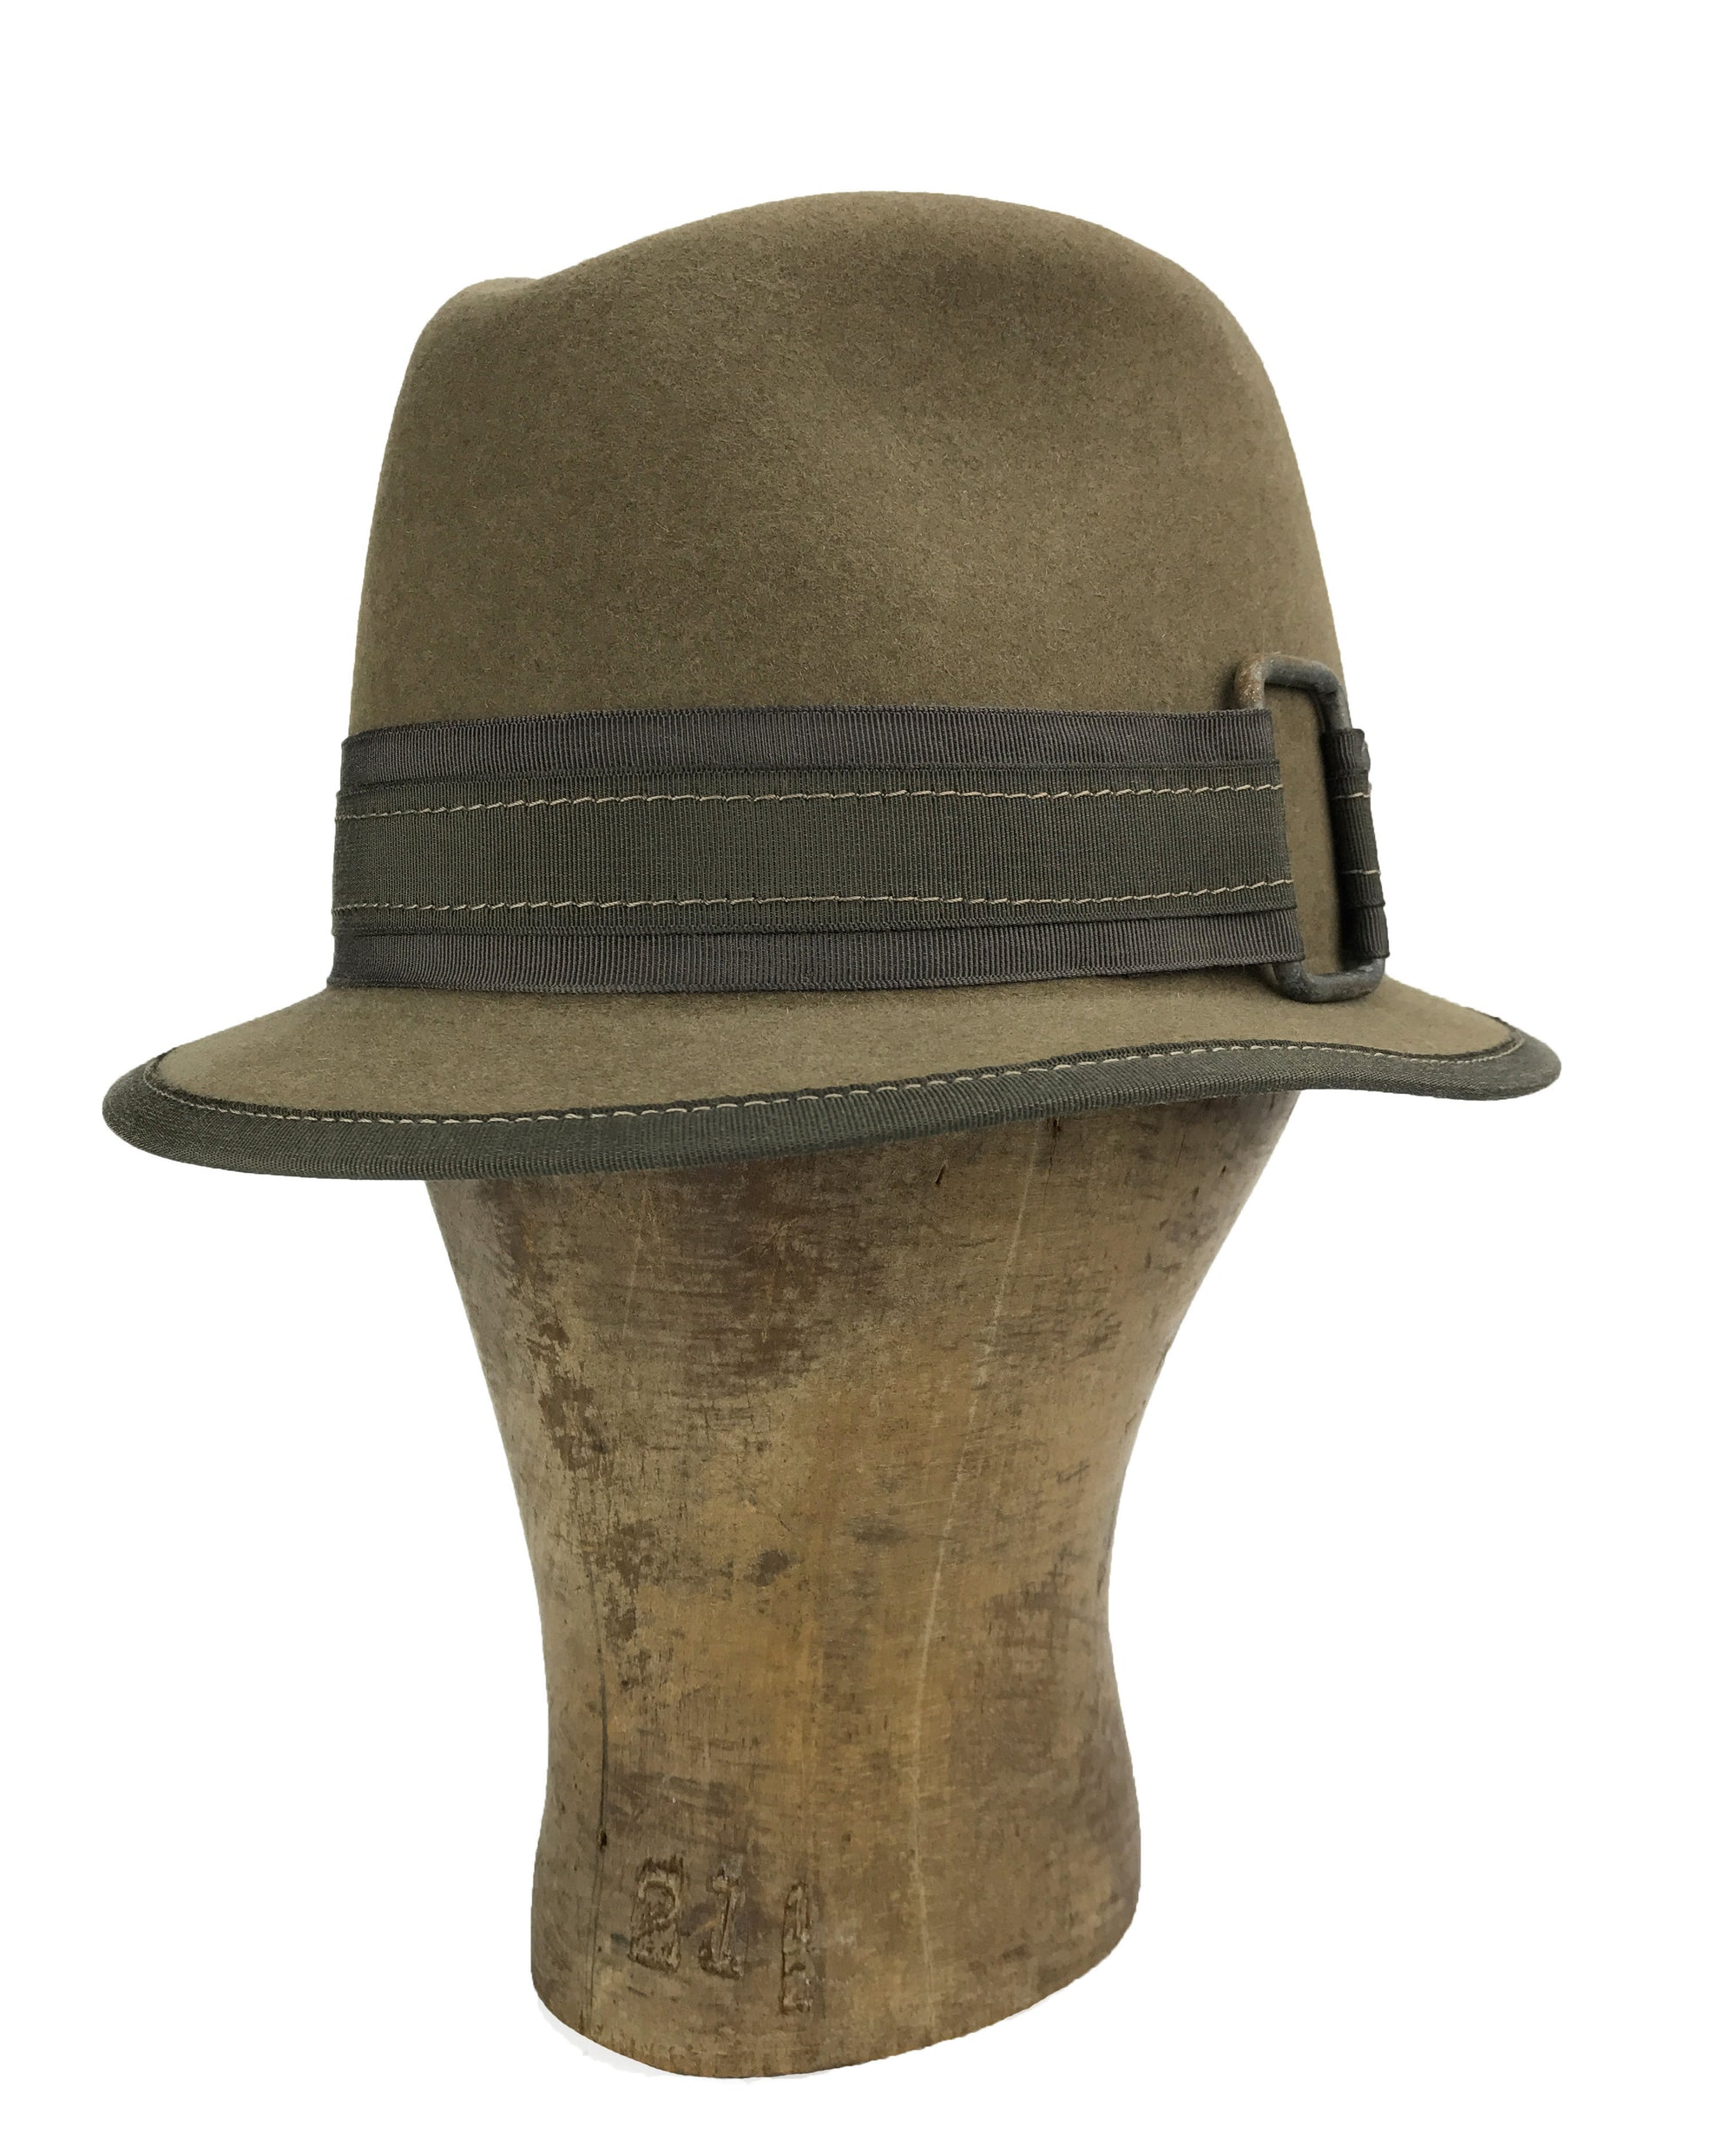 hatWRKS original buck up fedora crown